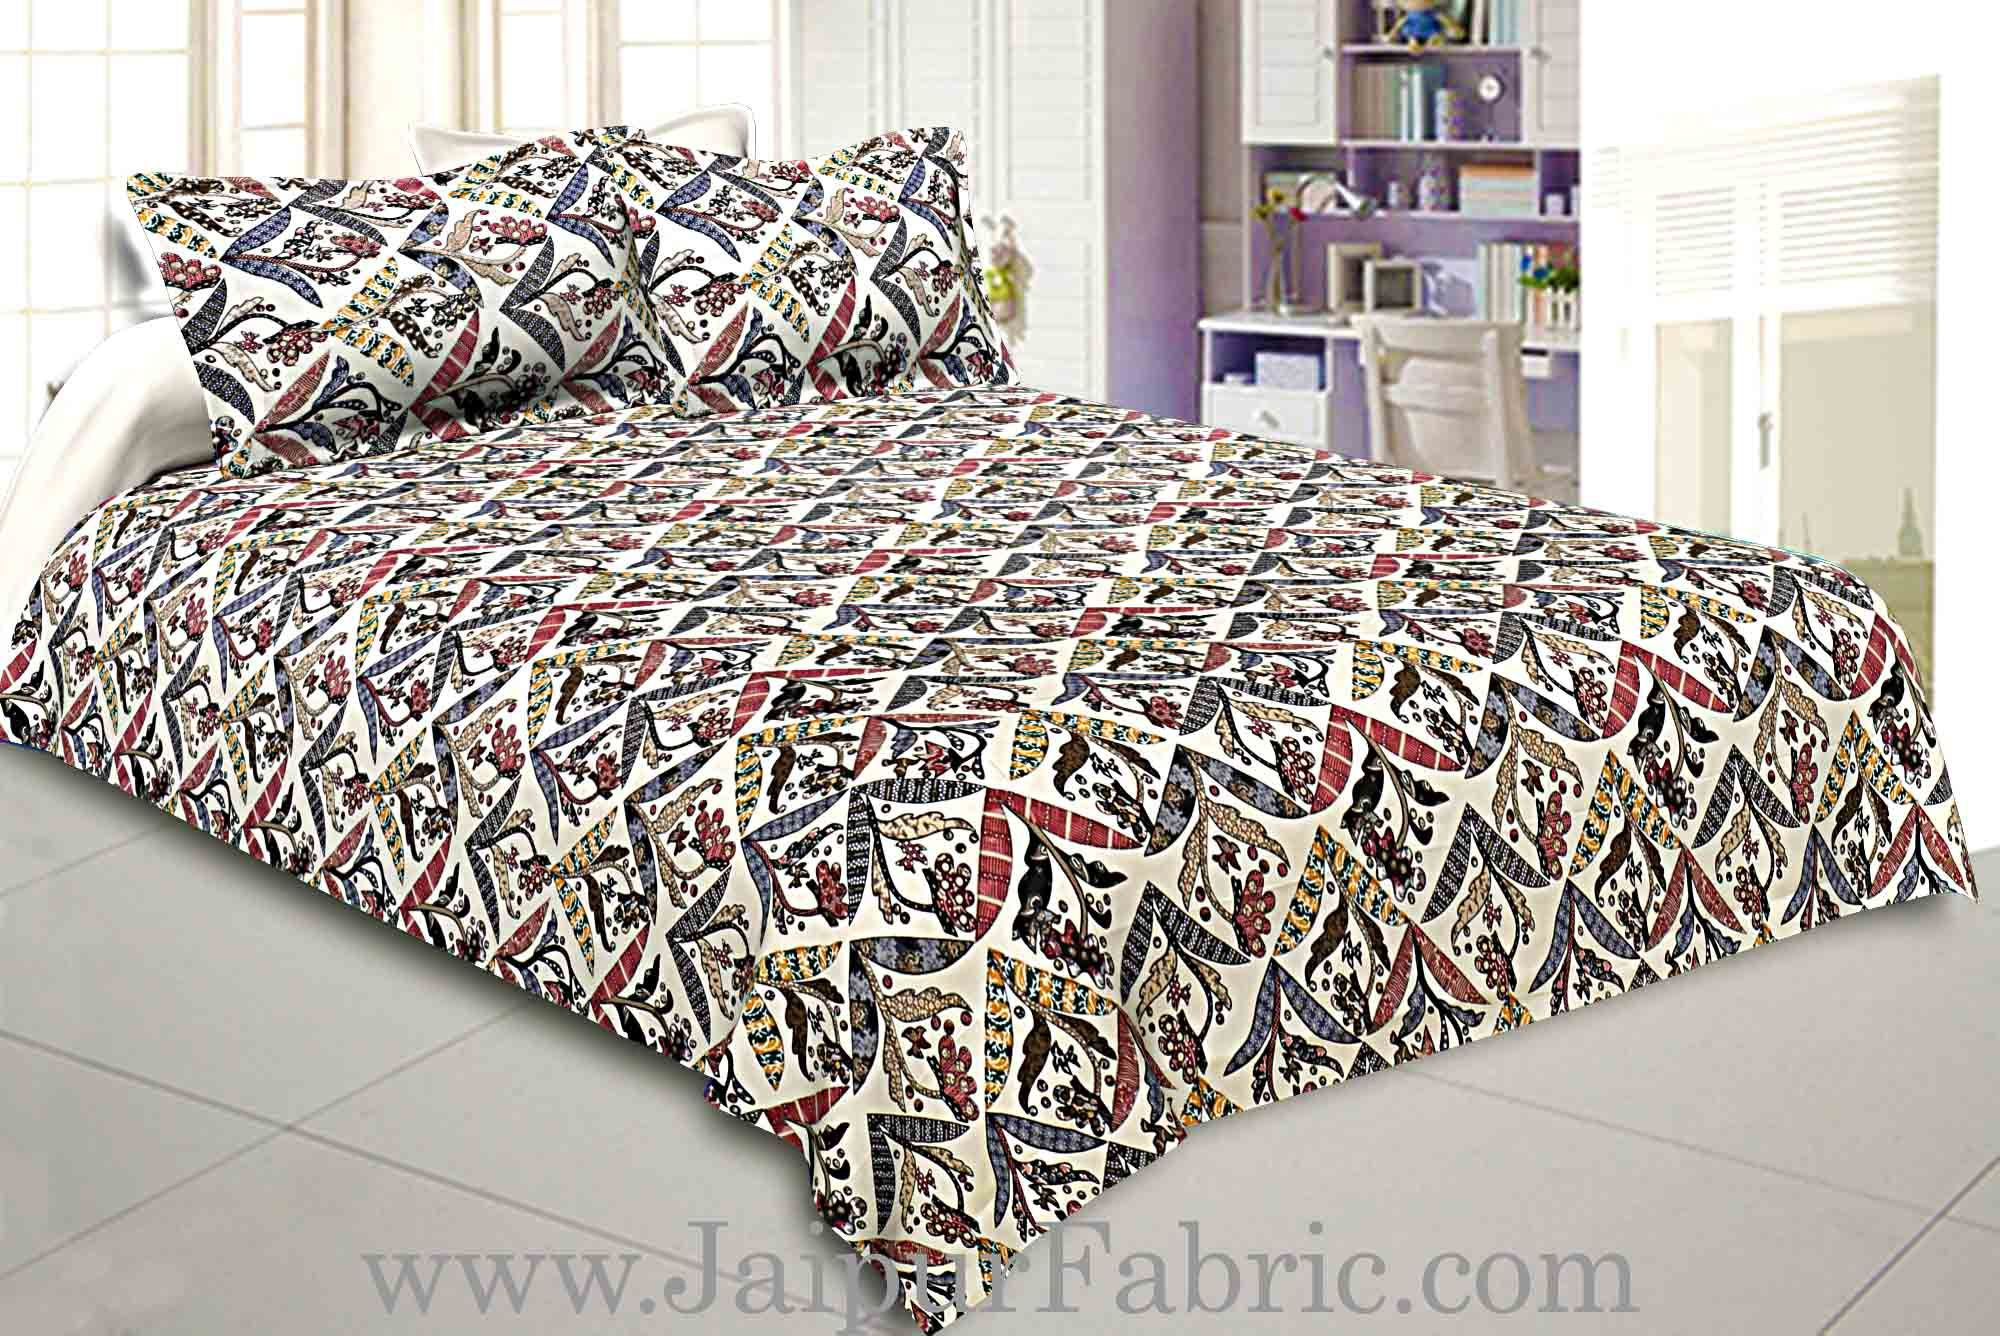 Seamless Geometric Floral Print Twill Cotton Double Bedsheet